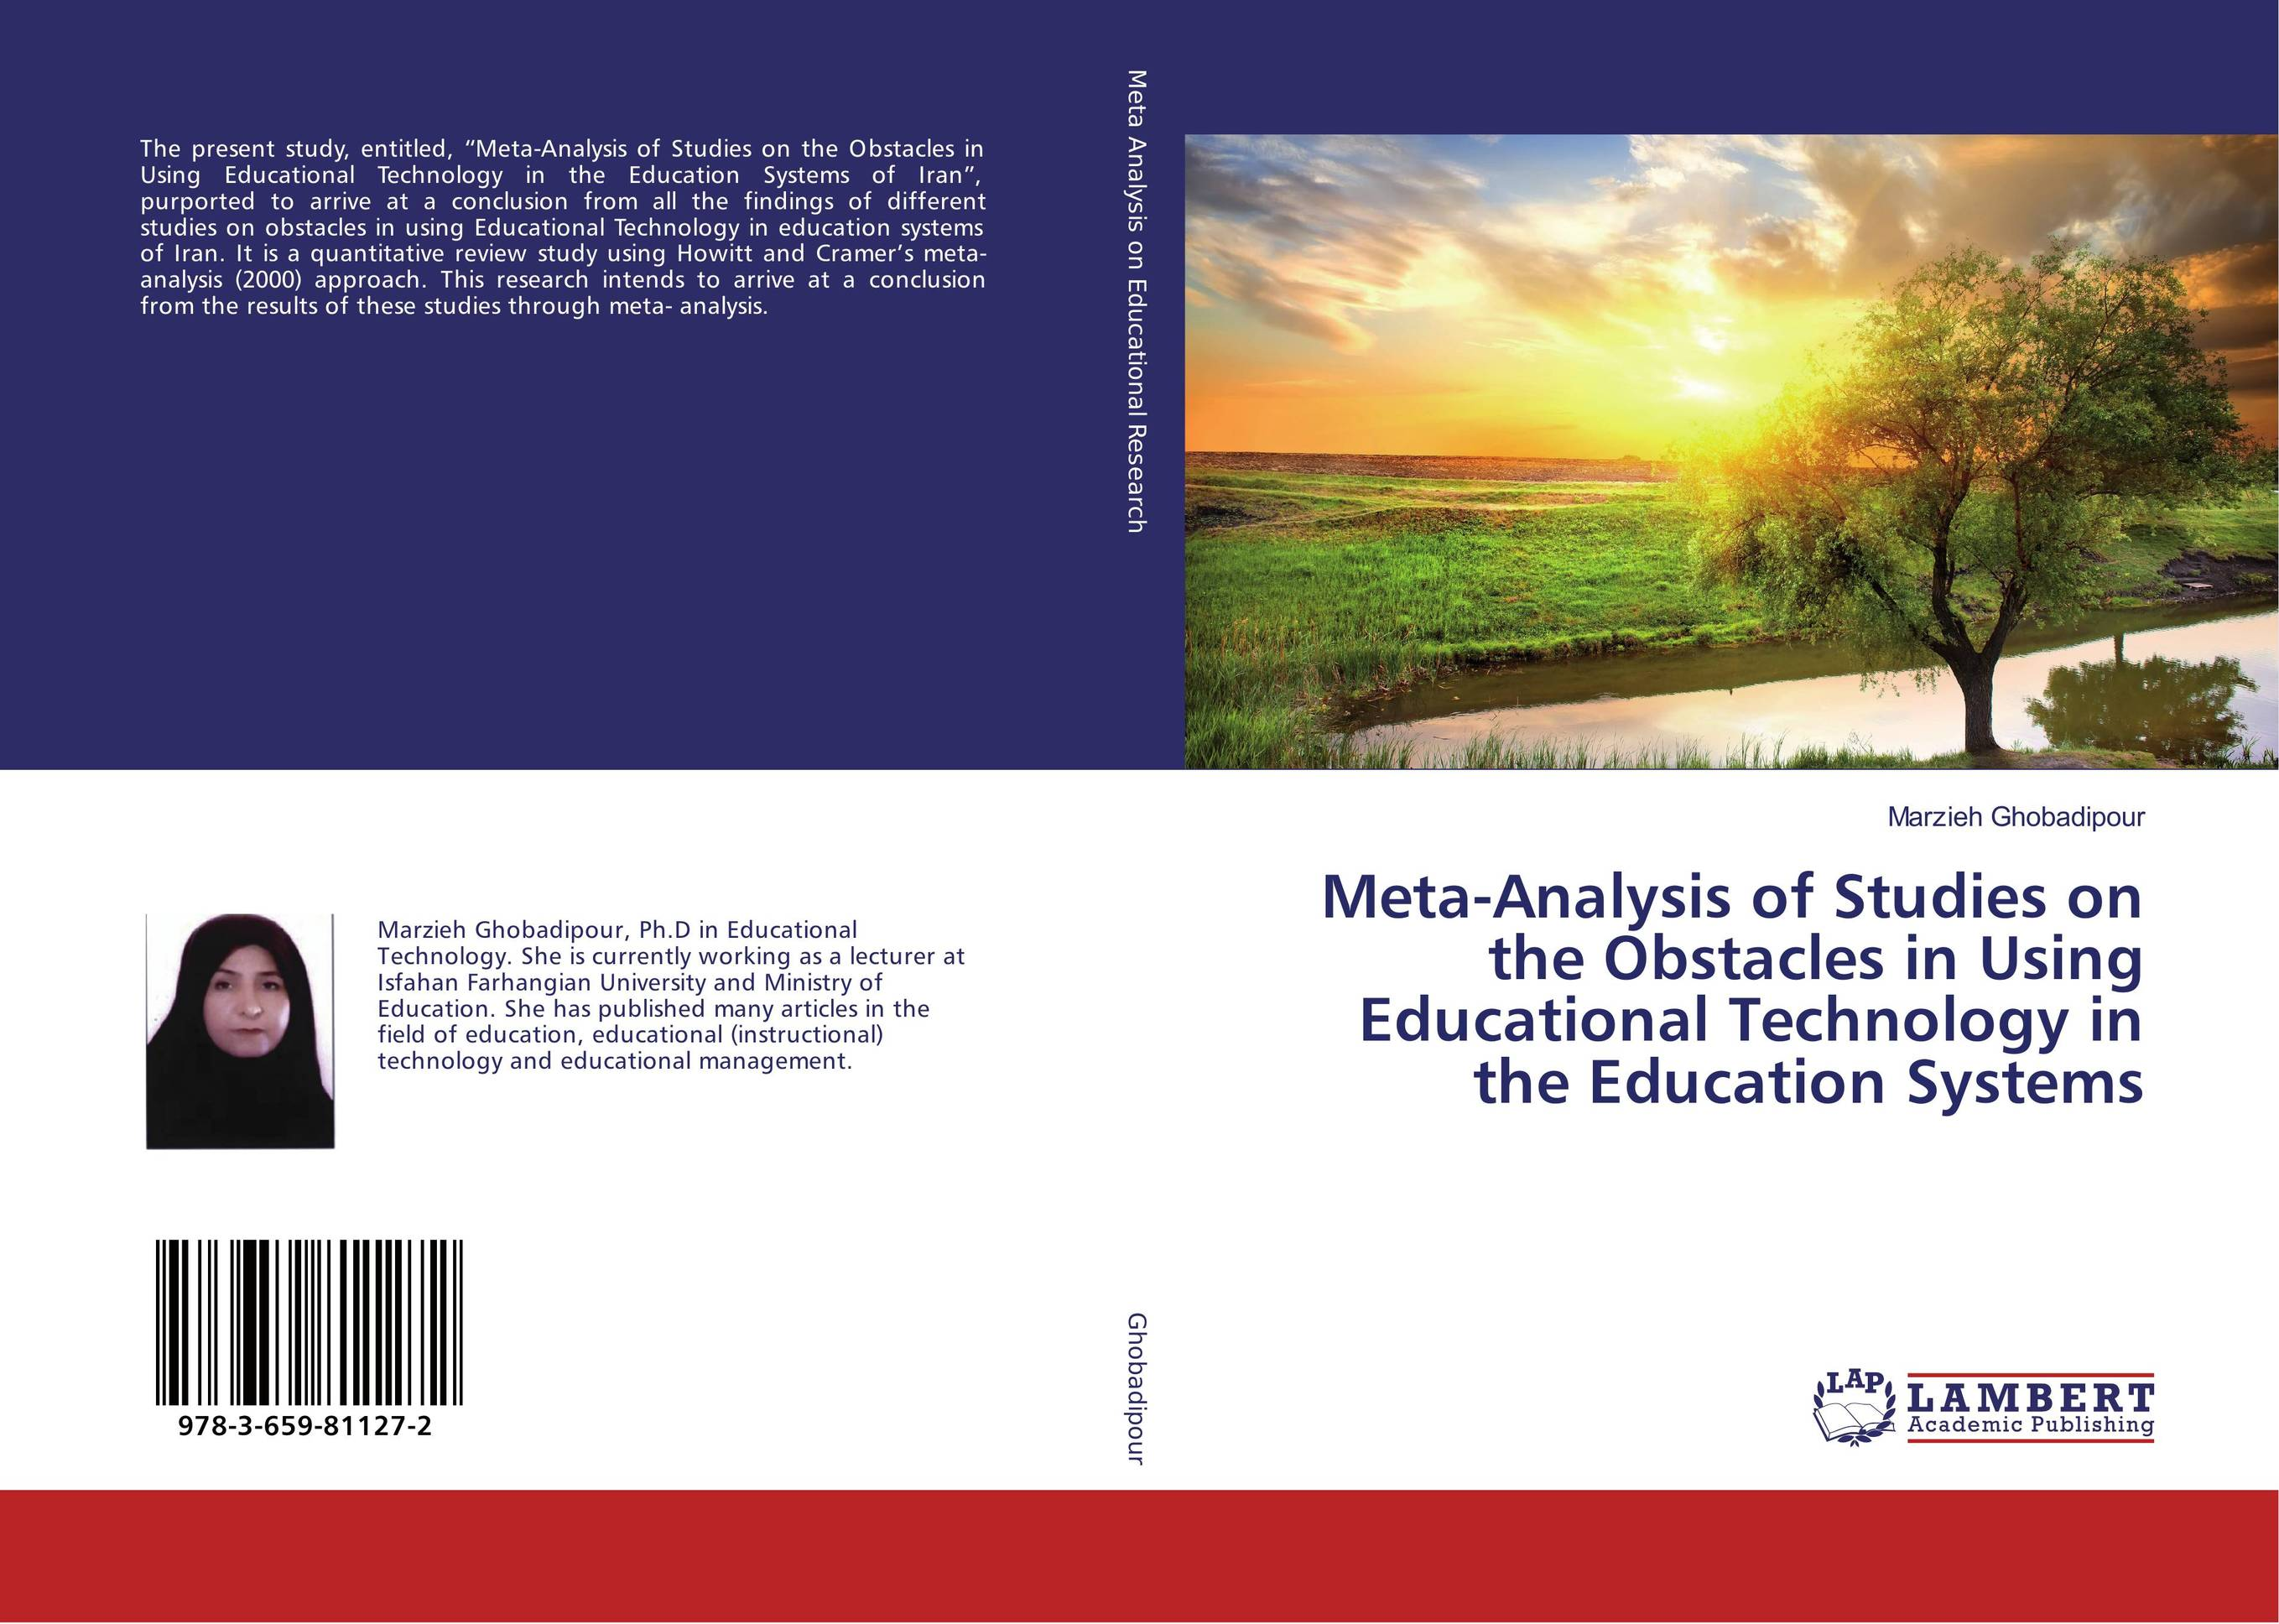 Meta-Analysis of Studies on the Obstacles in Using Educational Technology in the Education Systems bijoy kumar nanda and ashirbad swain analysis of machine tool structure using rsm approach